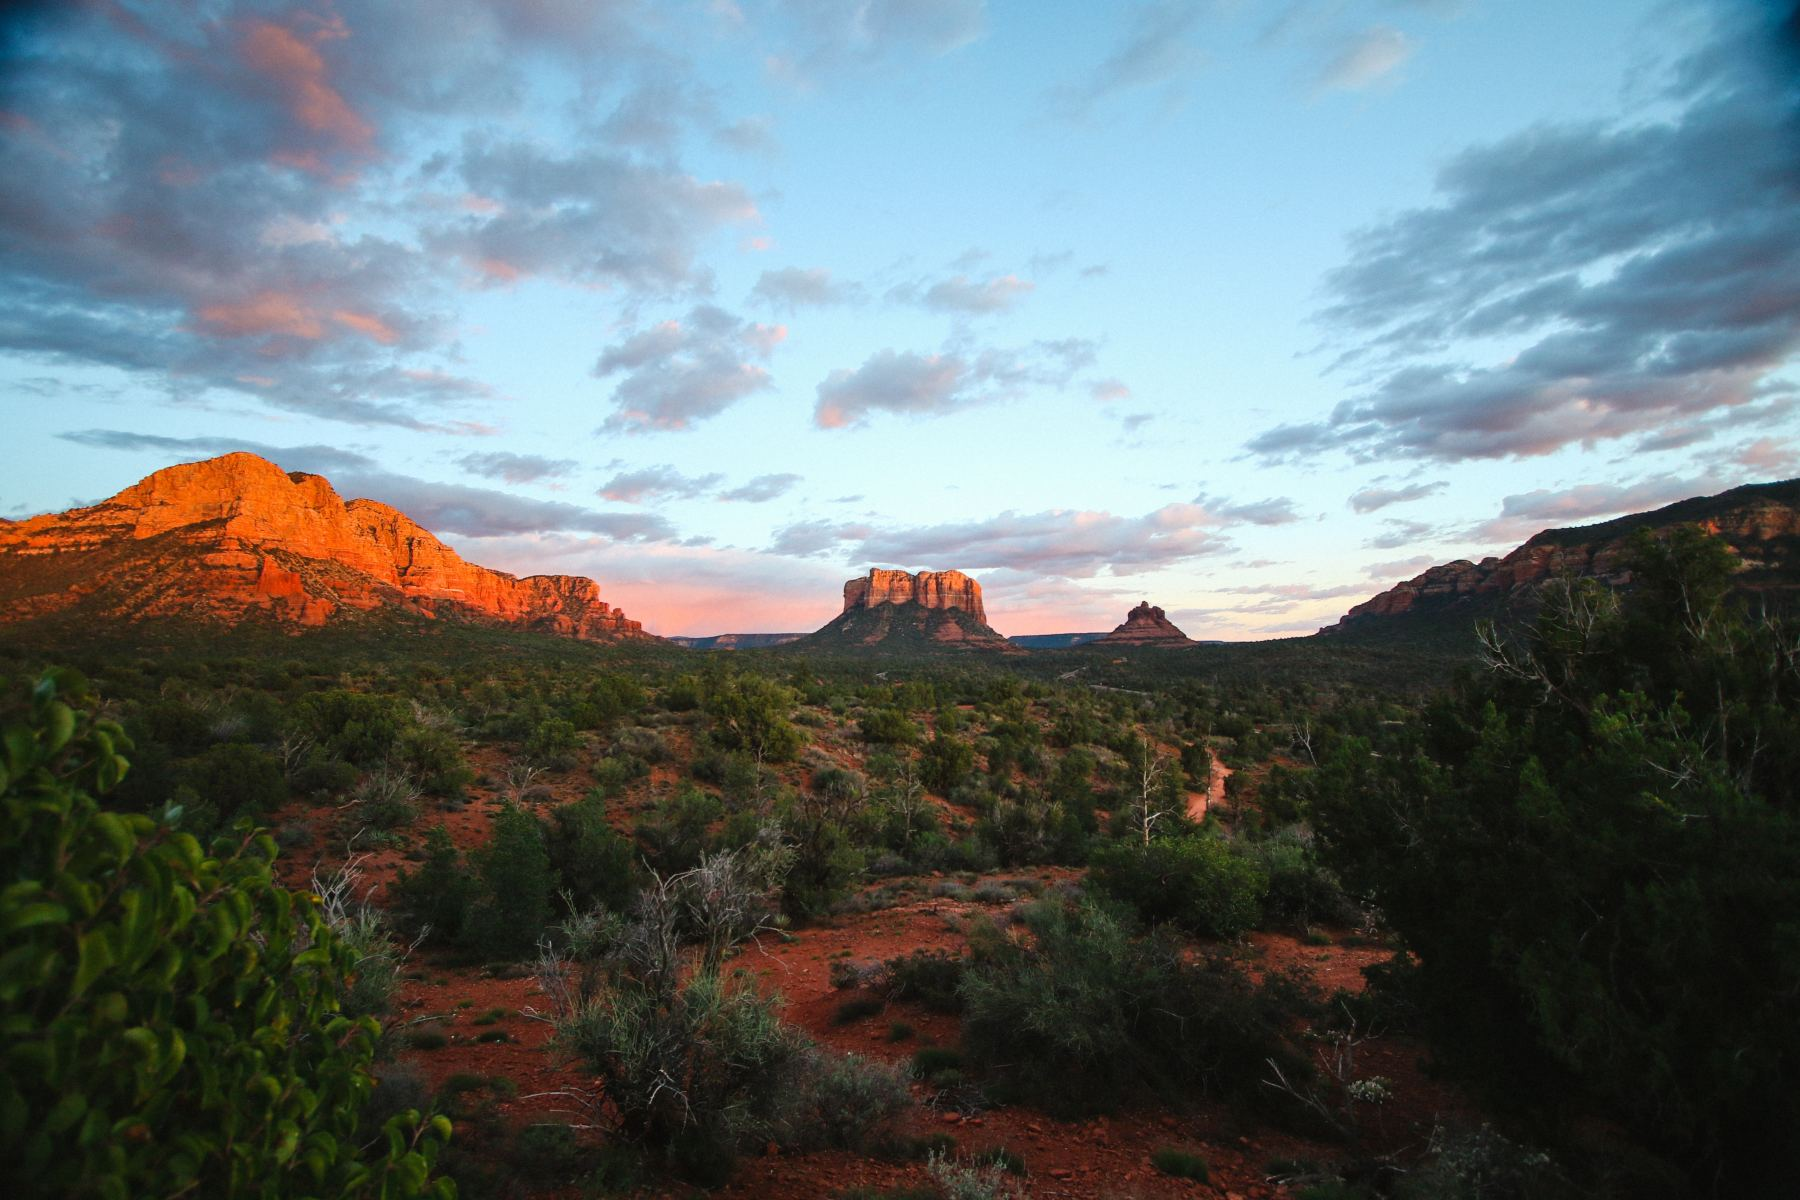 Sedona-jeremy-bishop-VCaJ1-TQoPo-unsplash